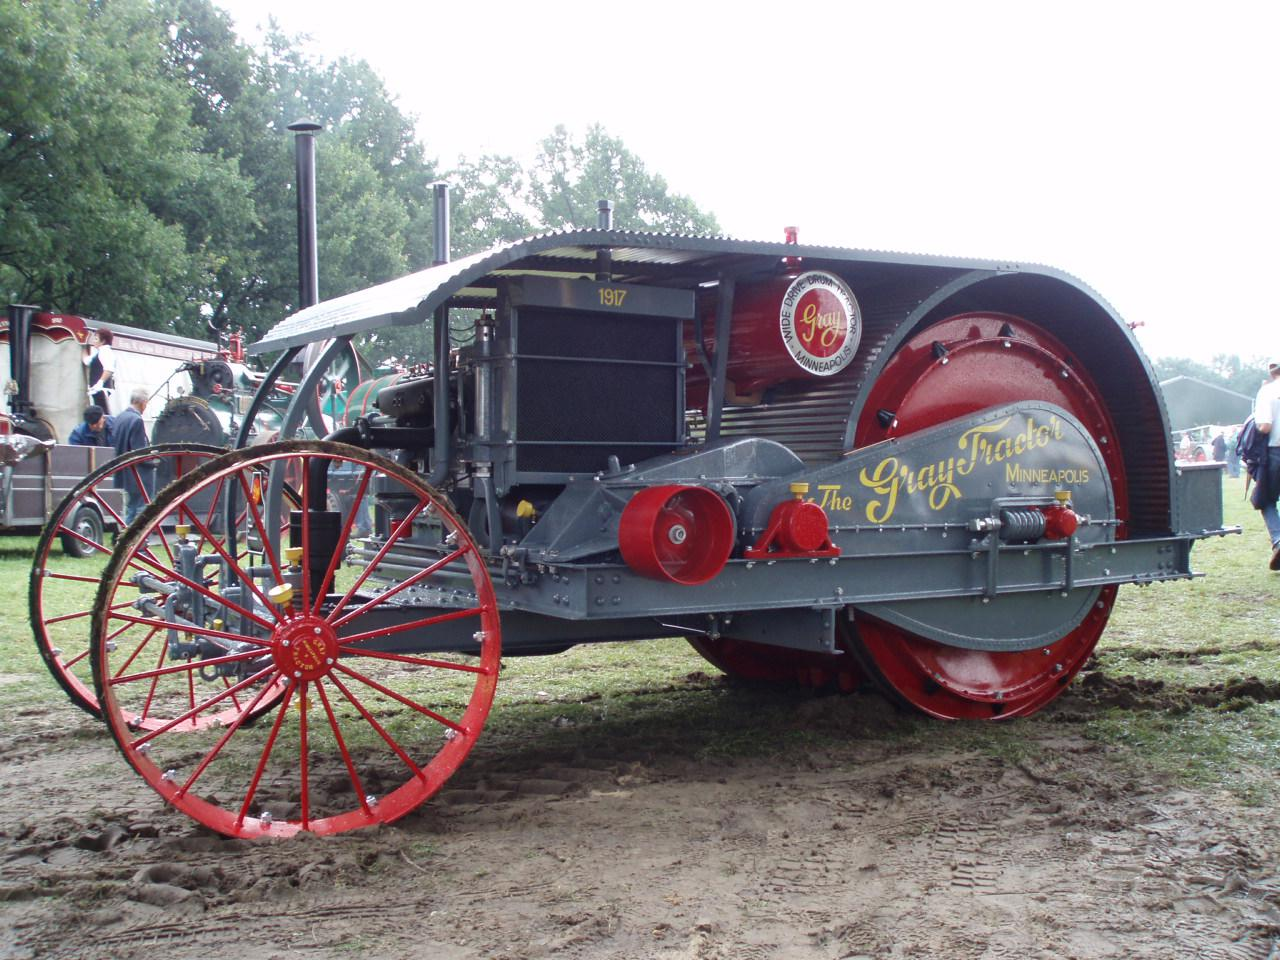 The Gray Tractor